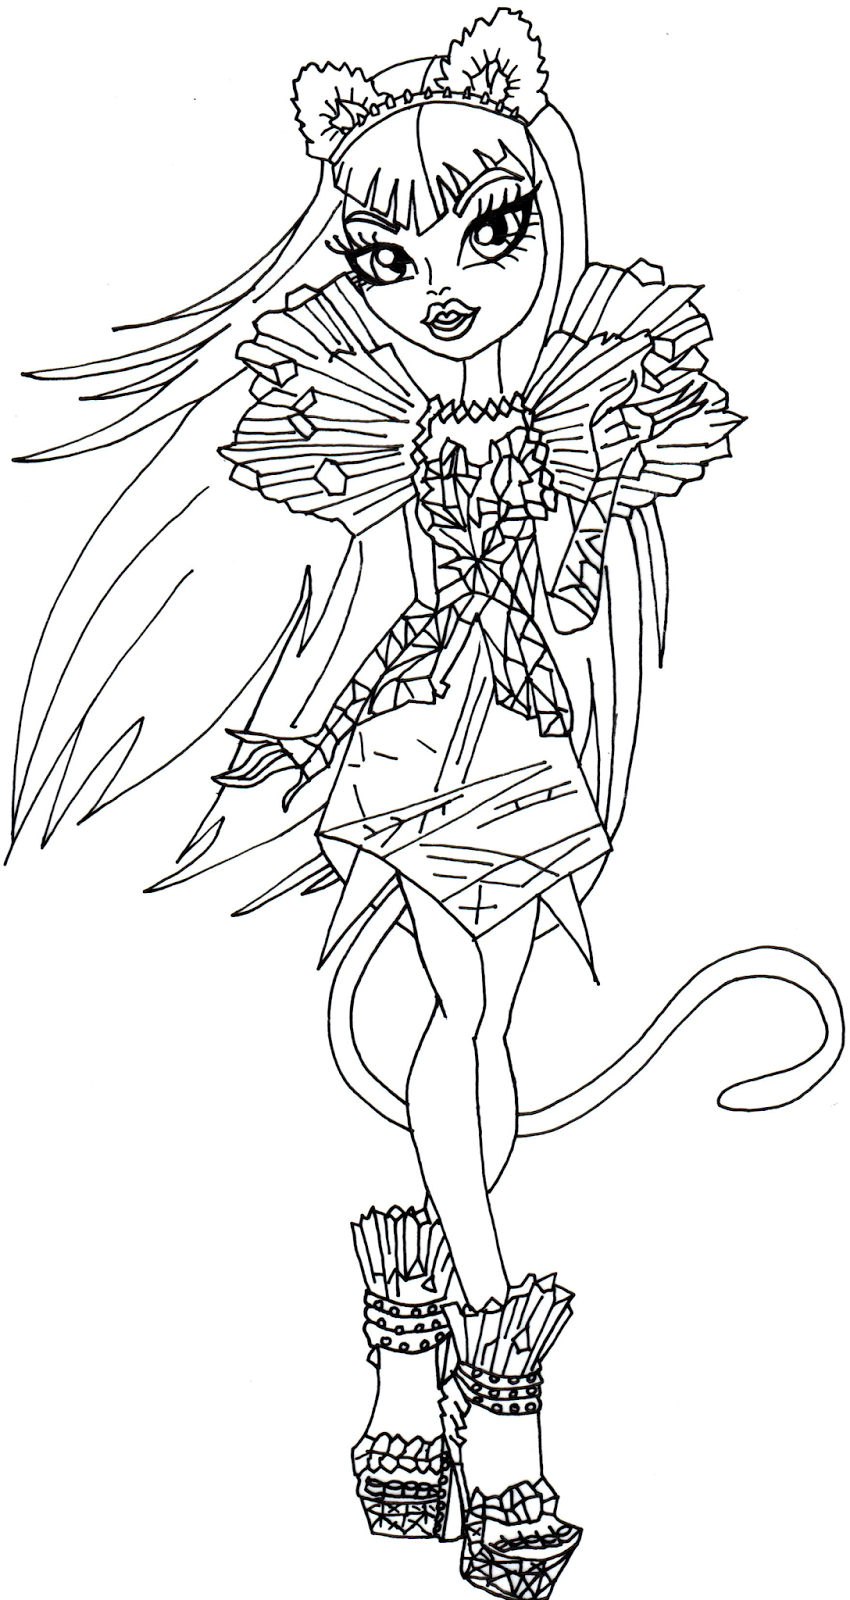 Free printable monster high coloring pages catty noir boo for Print monster high coloring pages